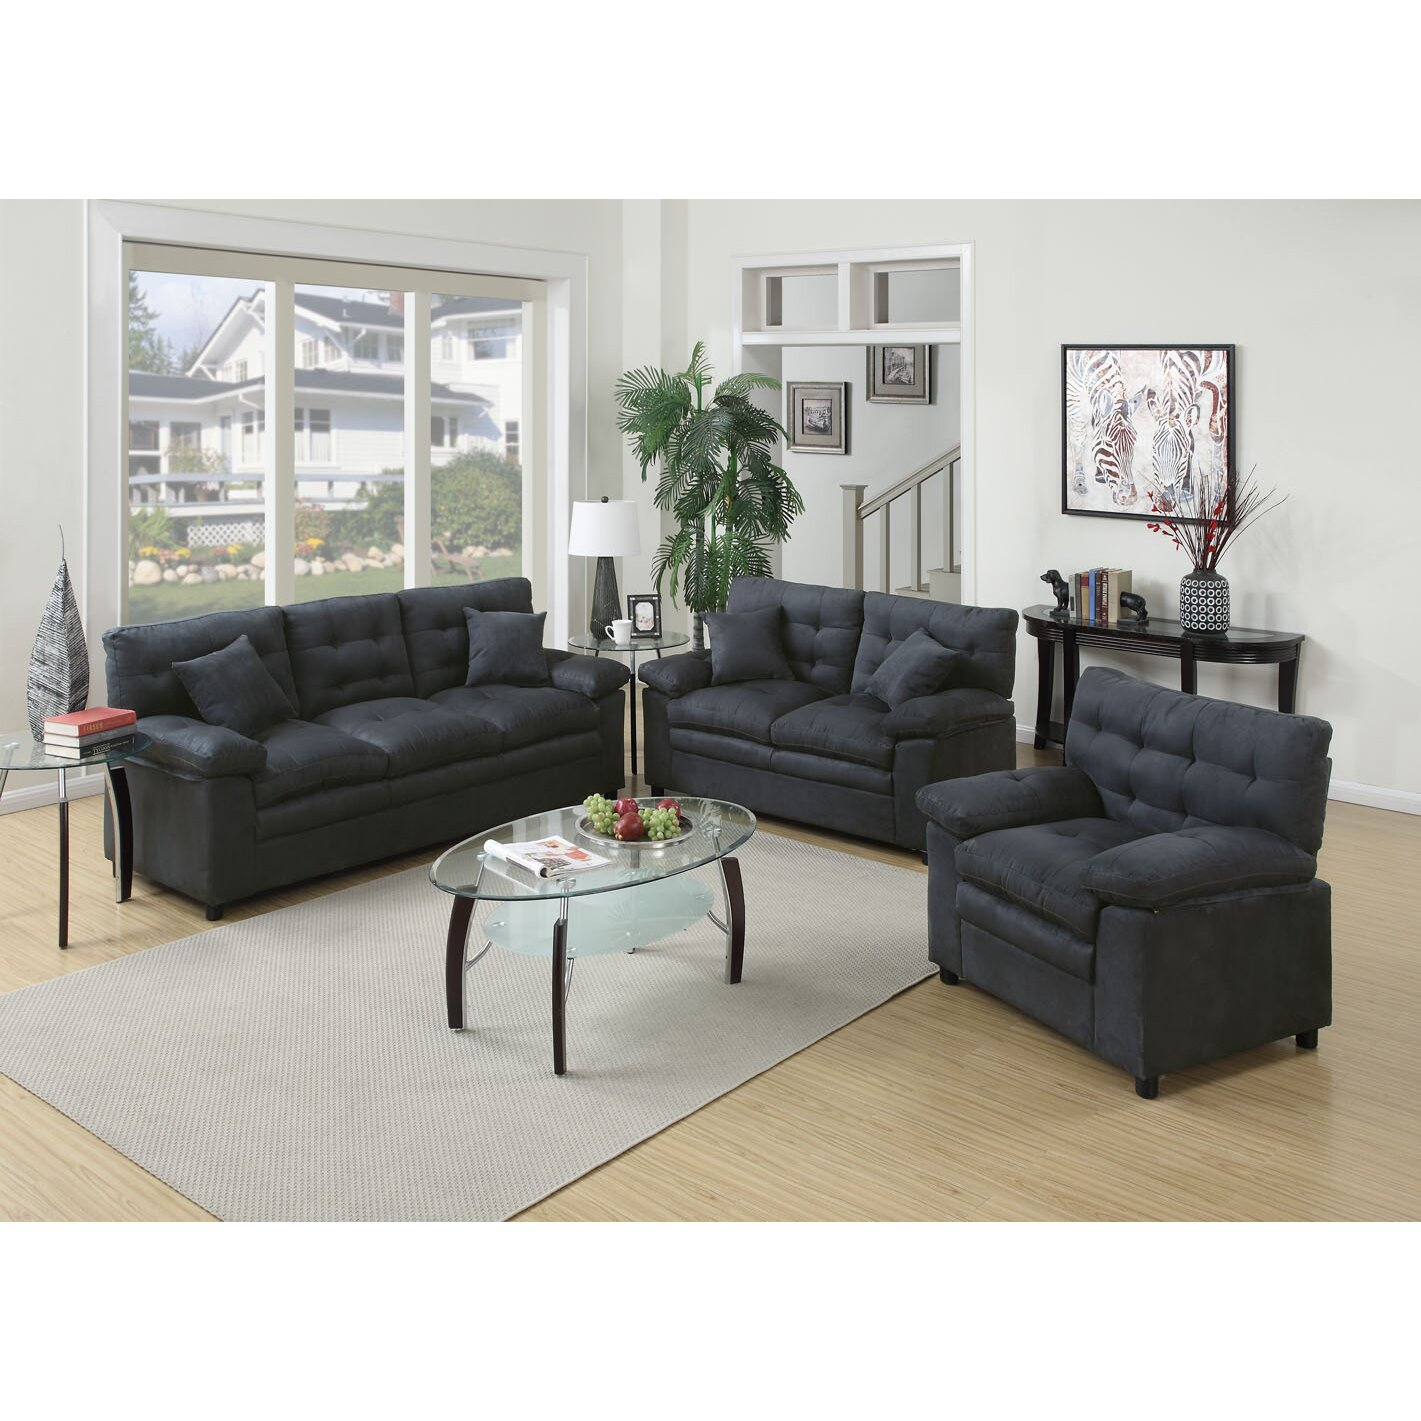 3 Piece Living Room Sets For Nomadiceuphoria Com